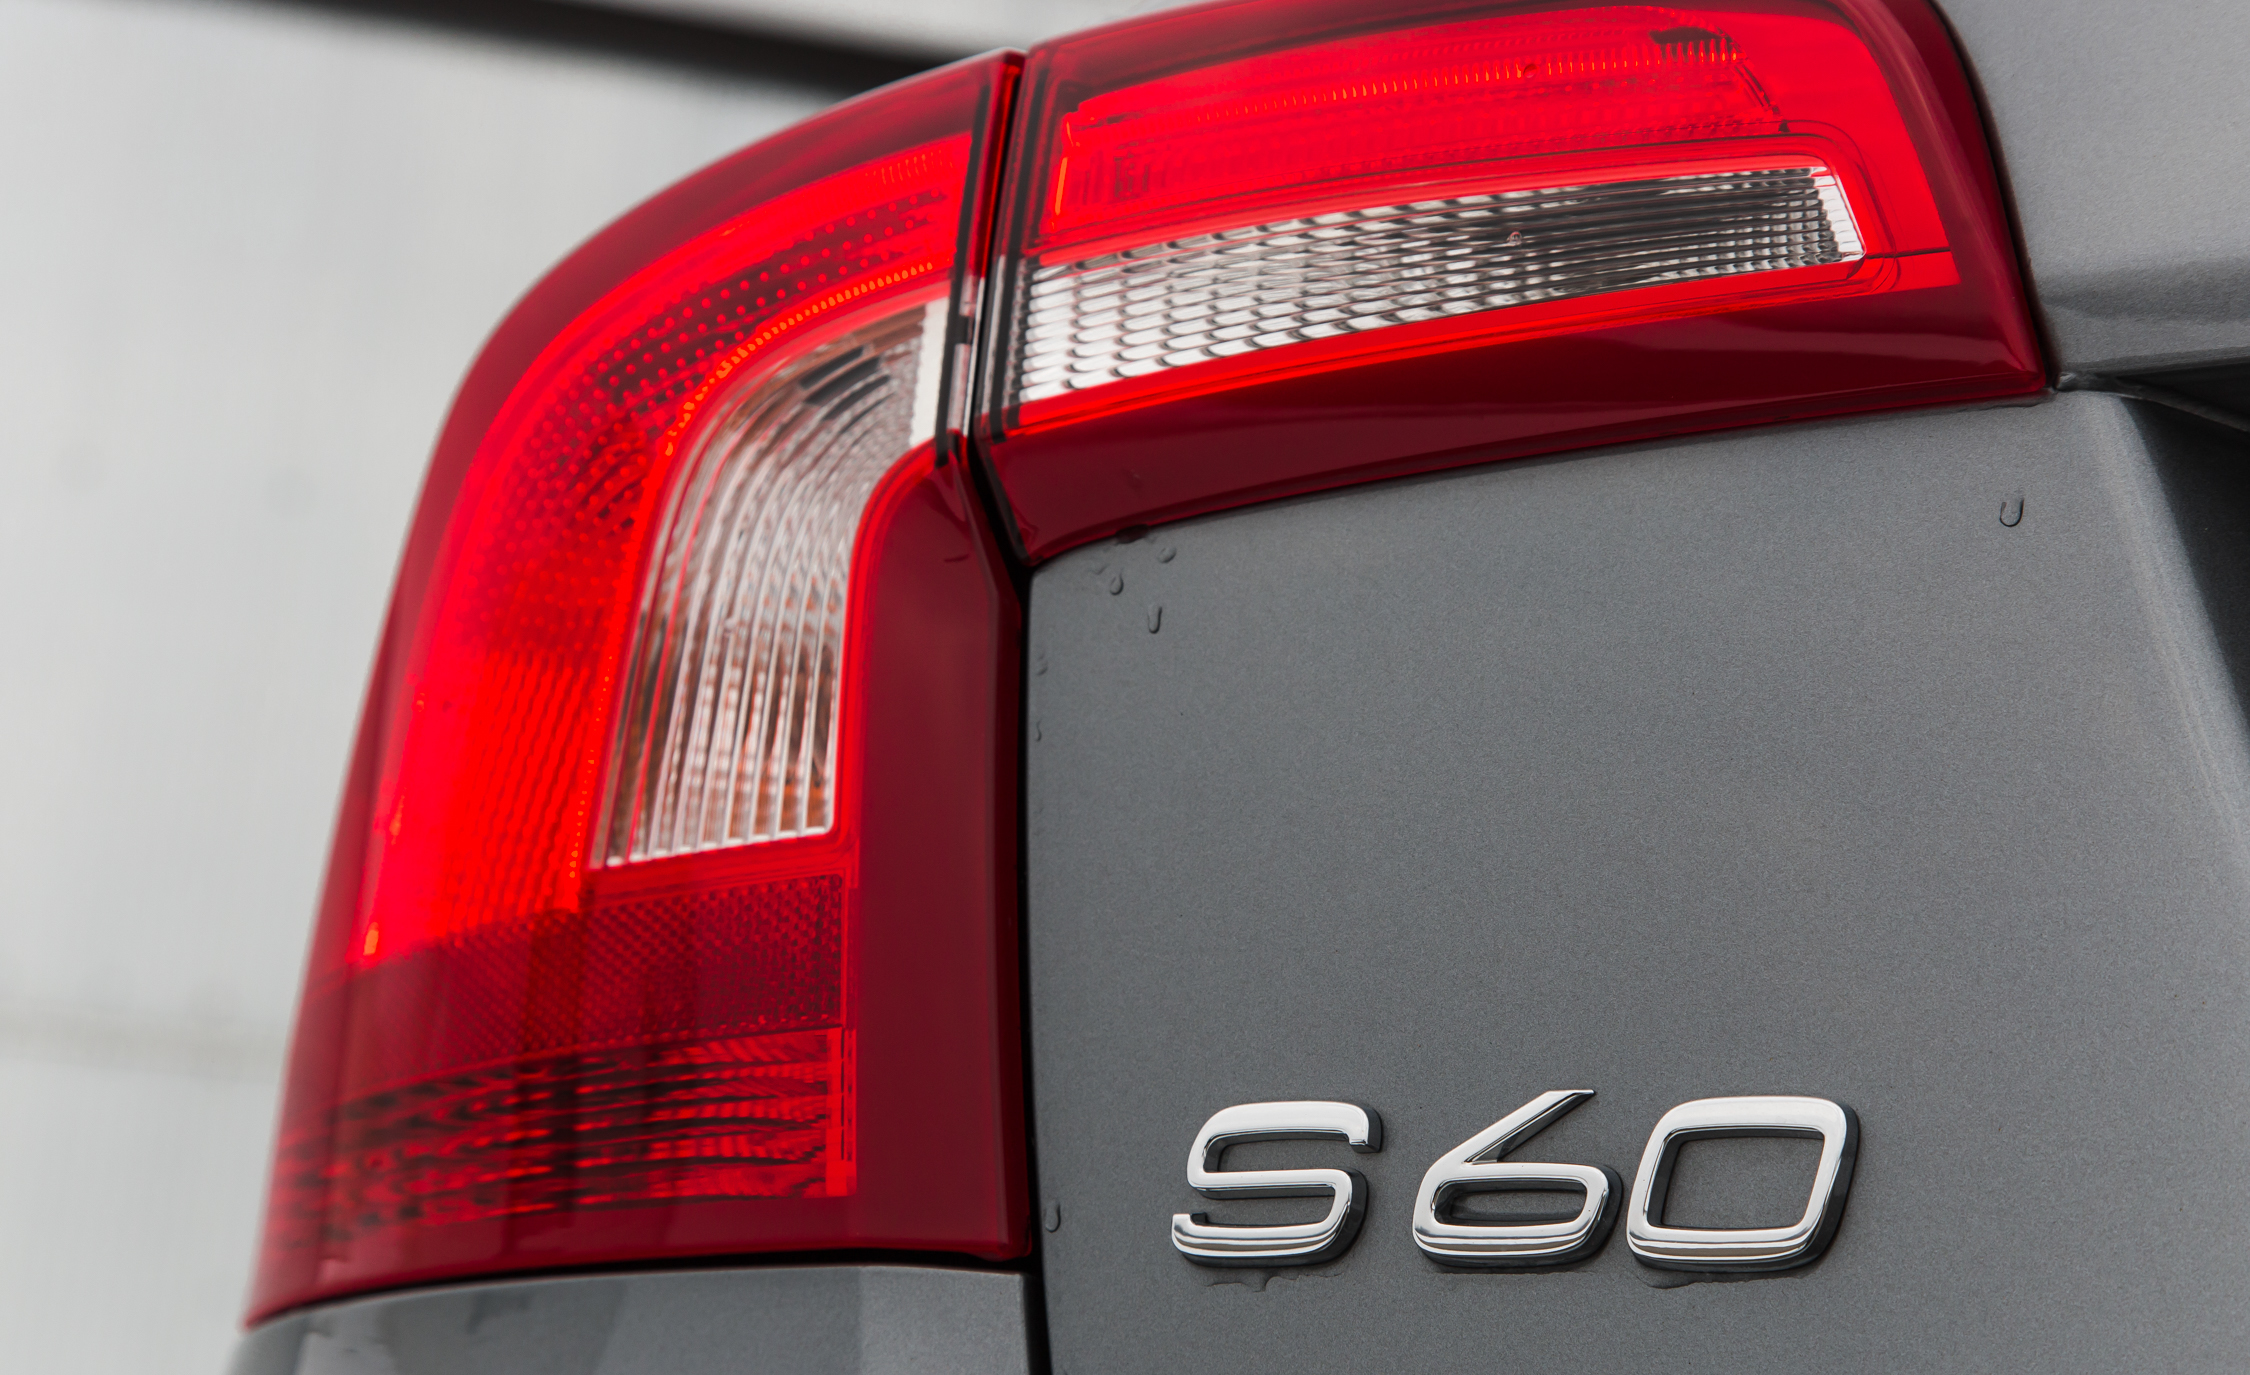 2016 Volvo S60 Cross Country Exterior Taillight (Photo 9 of 21)